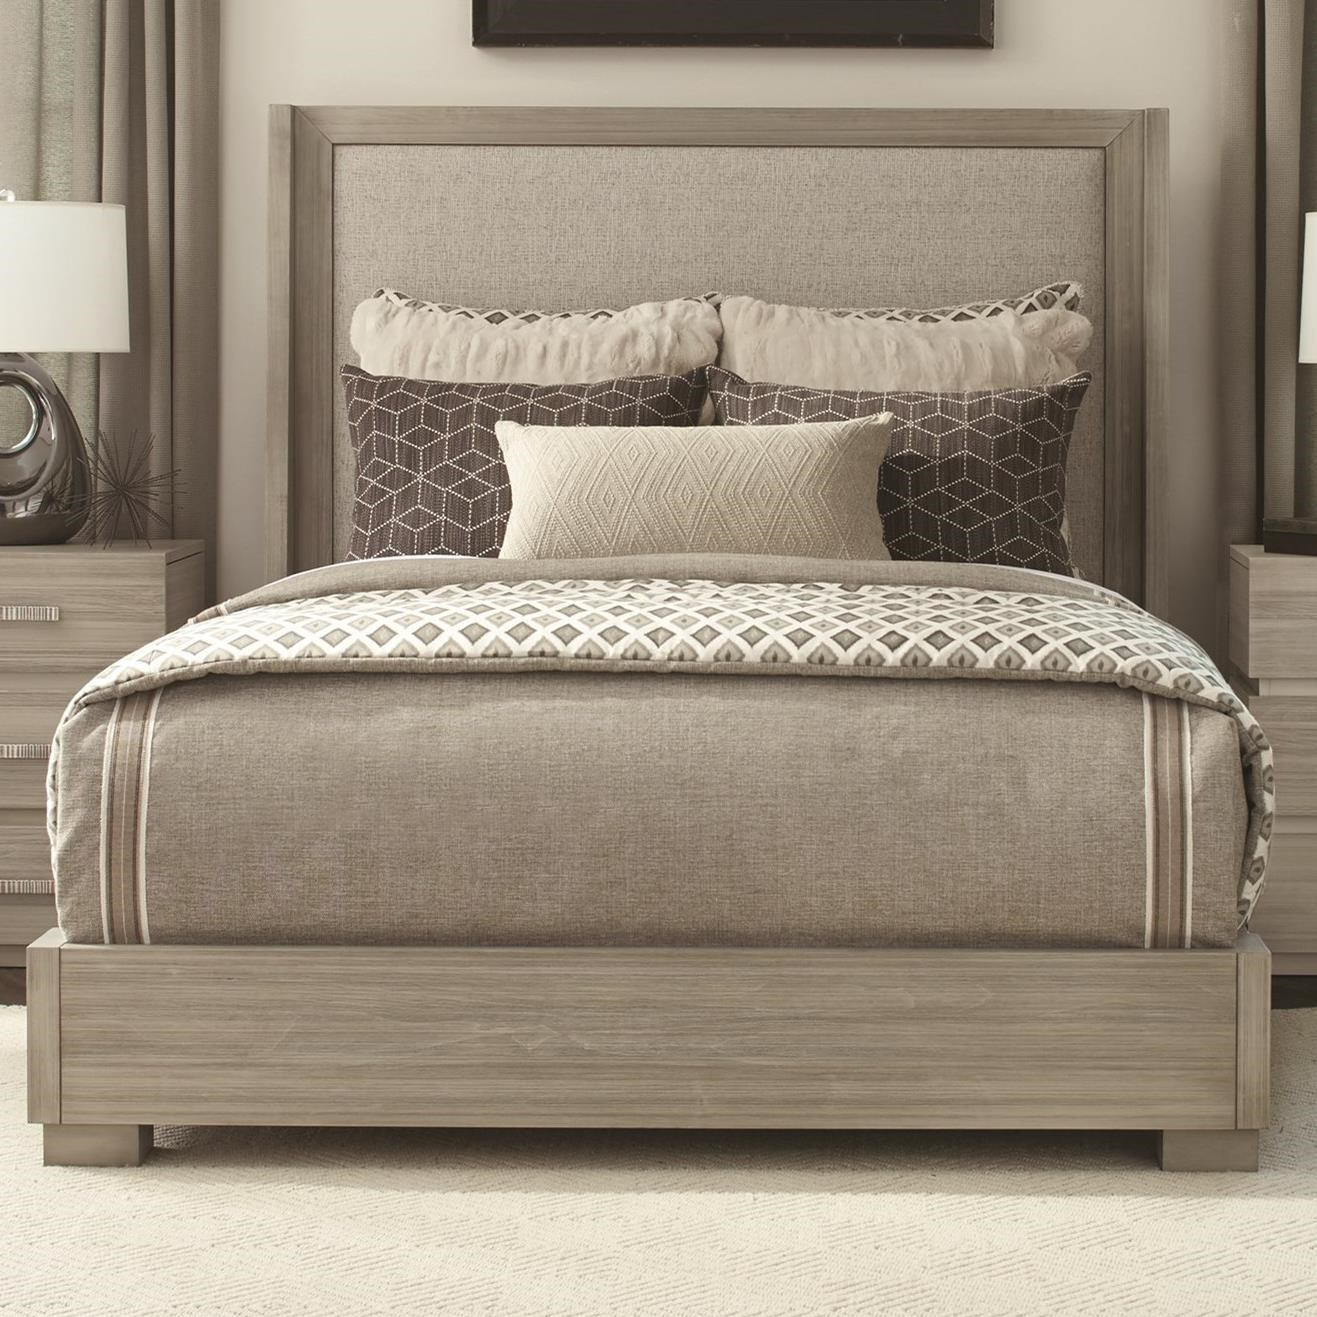 Durham Modern Simplicity King Upholstered Bed With Low